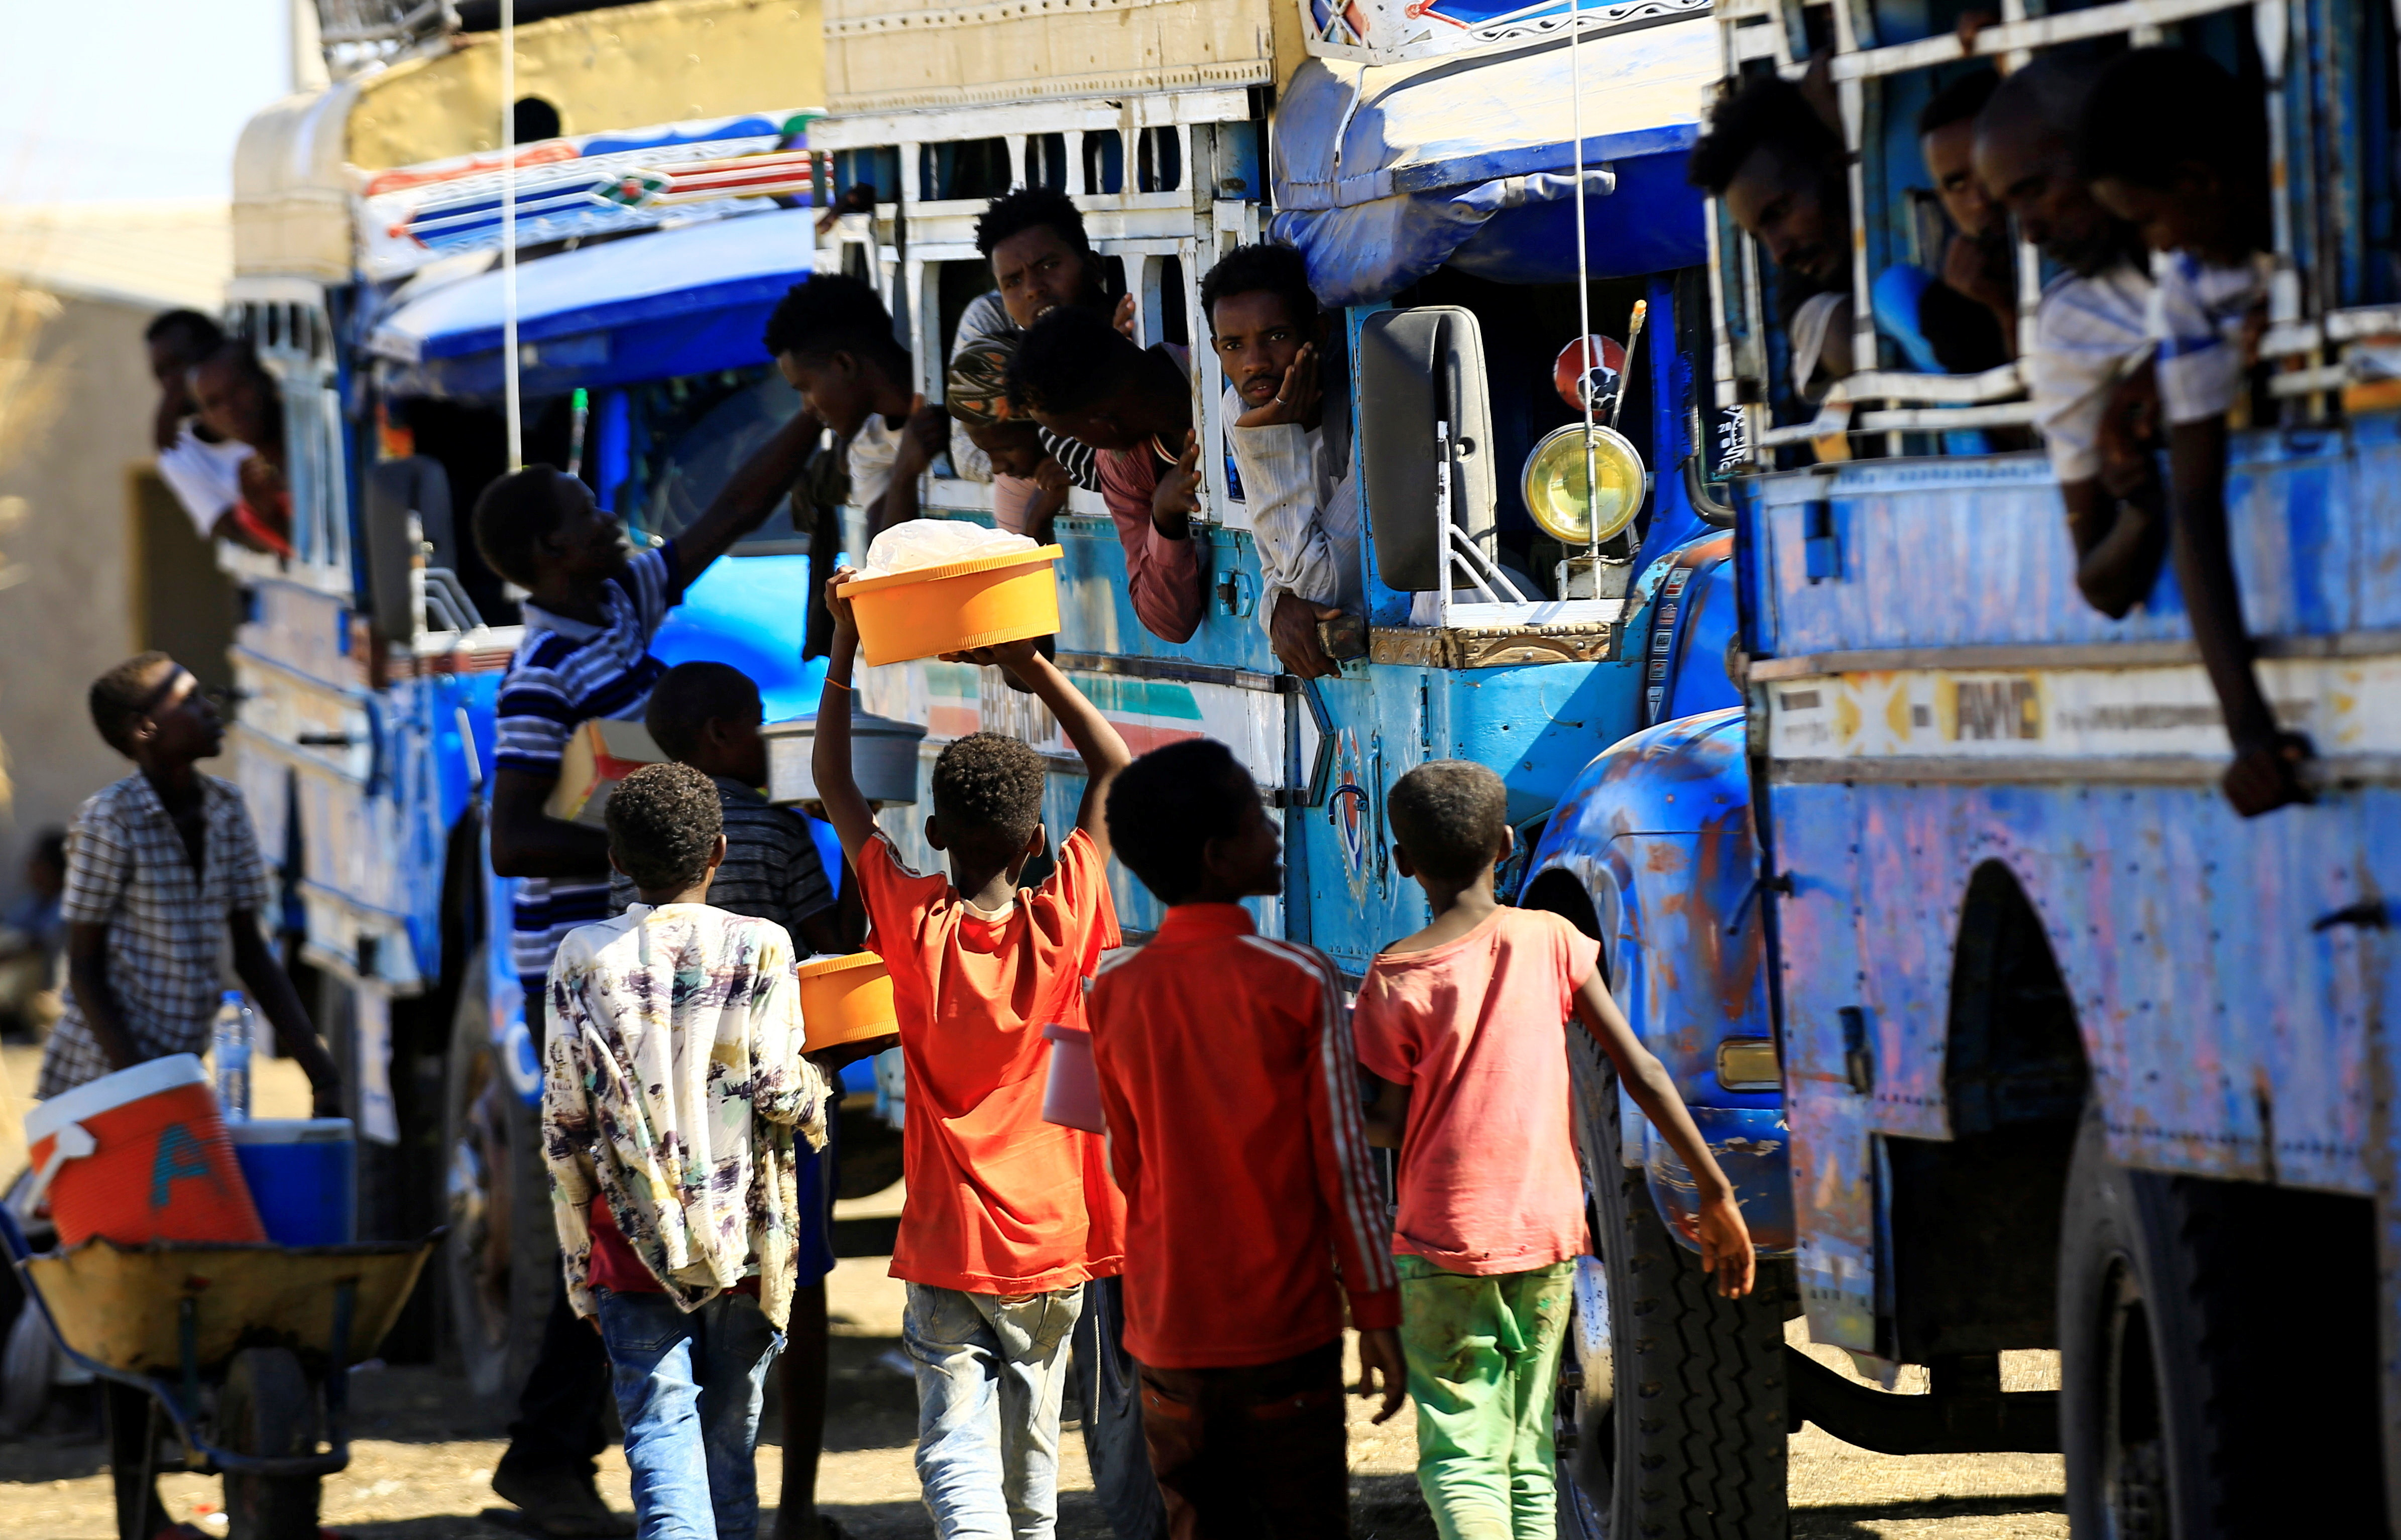 Ethiopian refugees who fled Tigray region, board courtesy buses at the Fashaga camp as they are transferred to Um-Rakoba camp on the Sudan-Ethiopia border, in Kassala state, Sudan December 13, 2020. REUTERS/Mohamed Nureldin Abdallah - RC2LMK9P4QNT